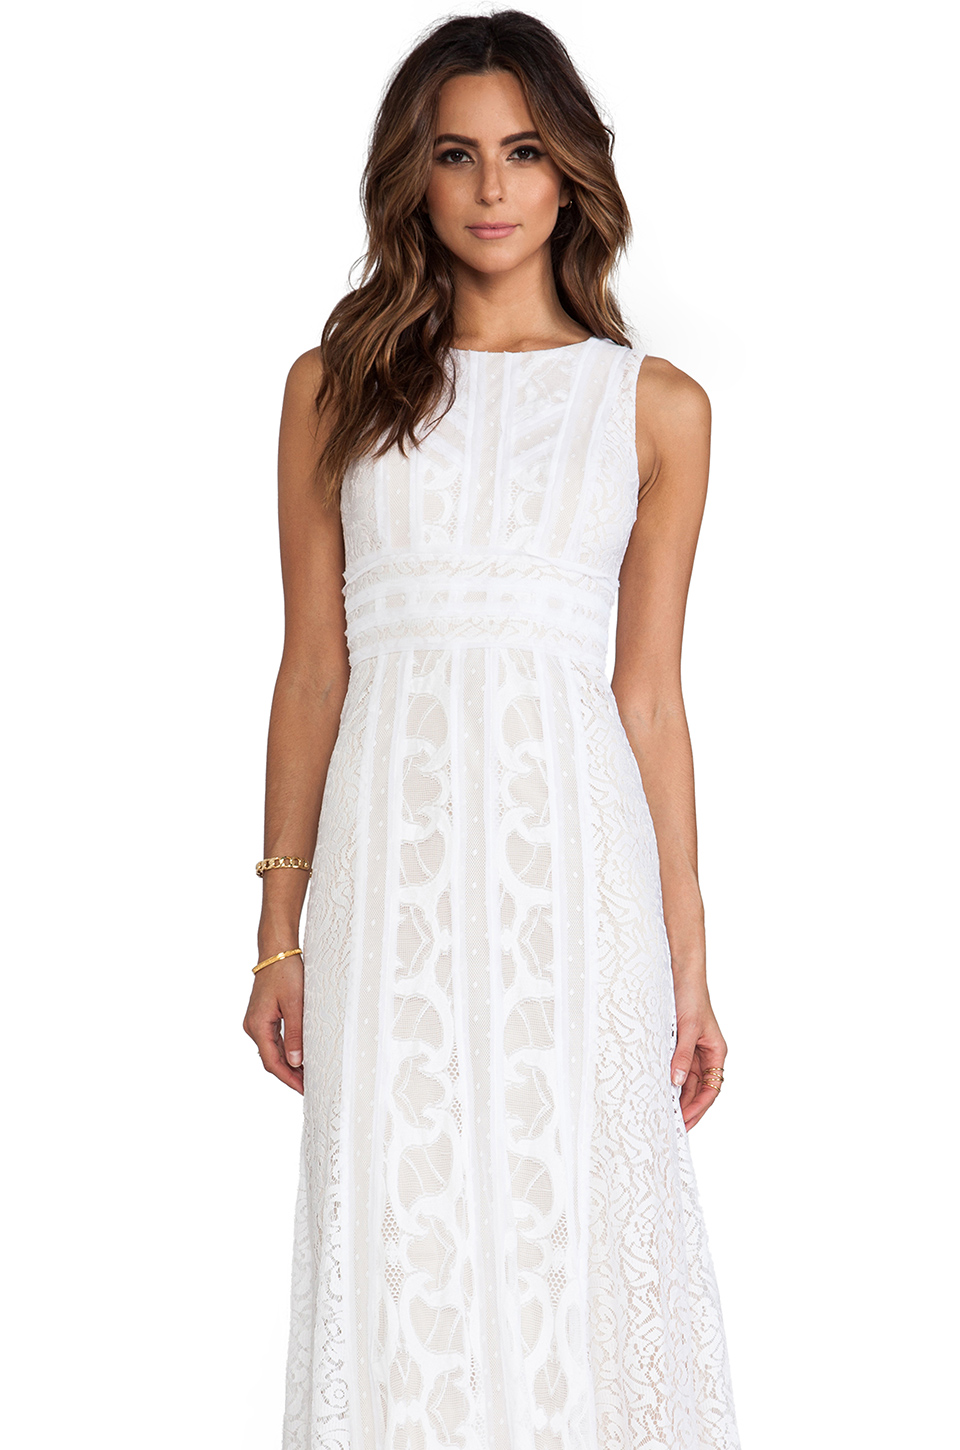 BCBGMAXAZRIA Kelley Dress in White